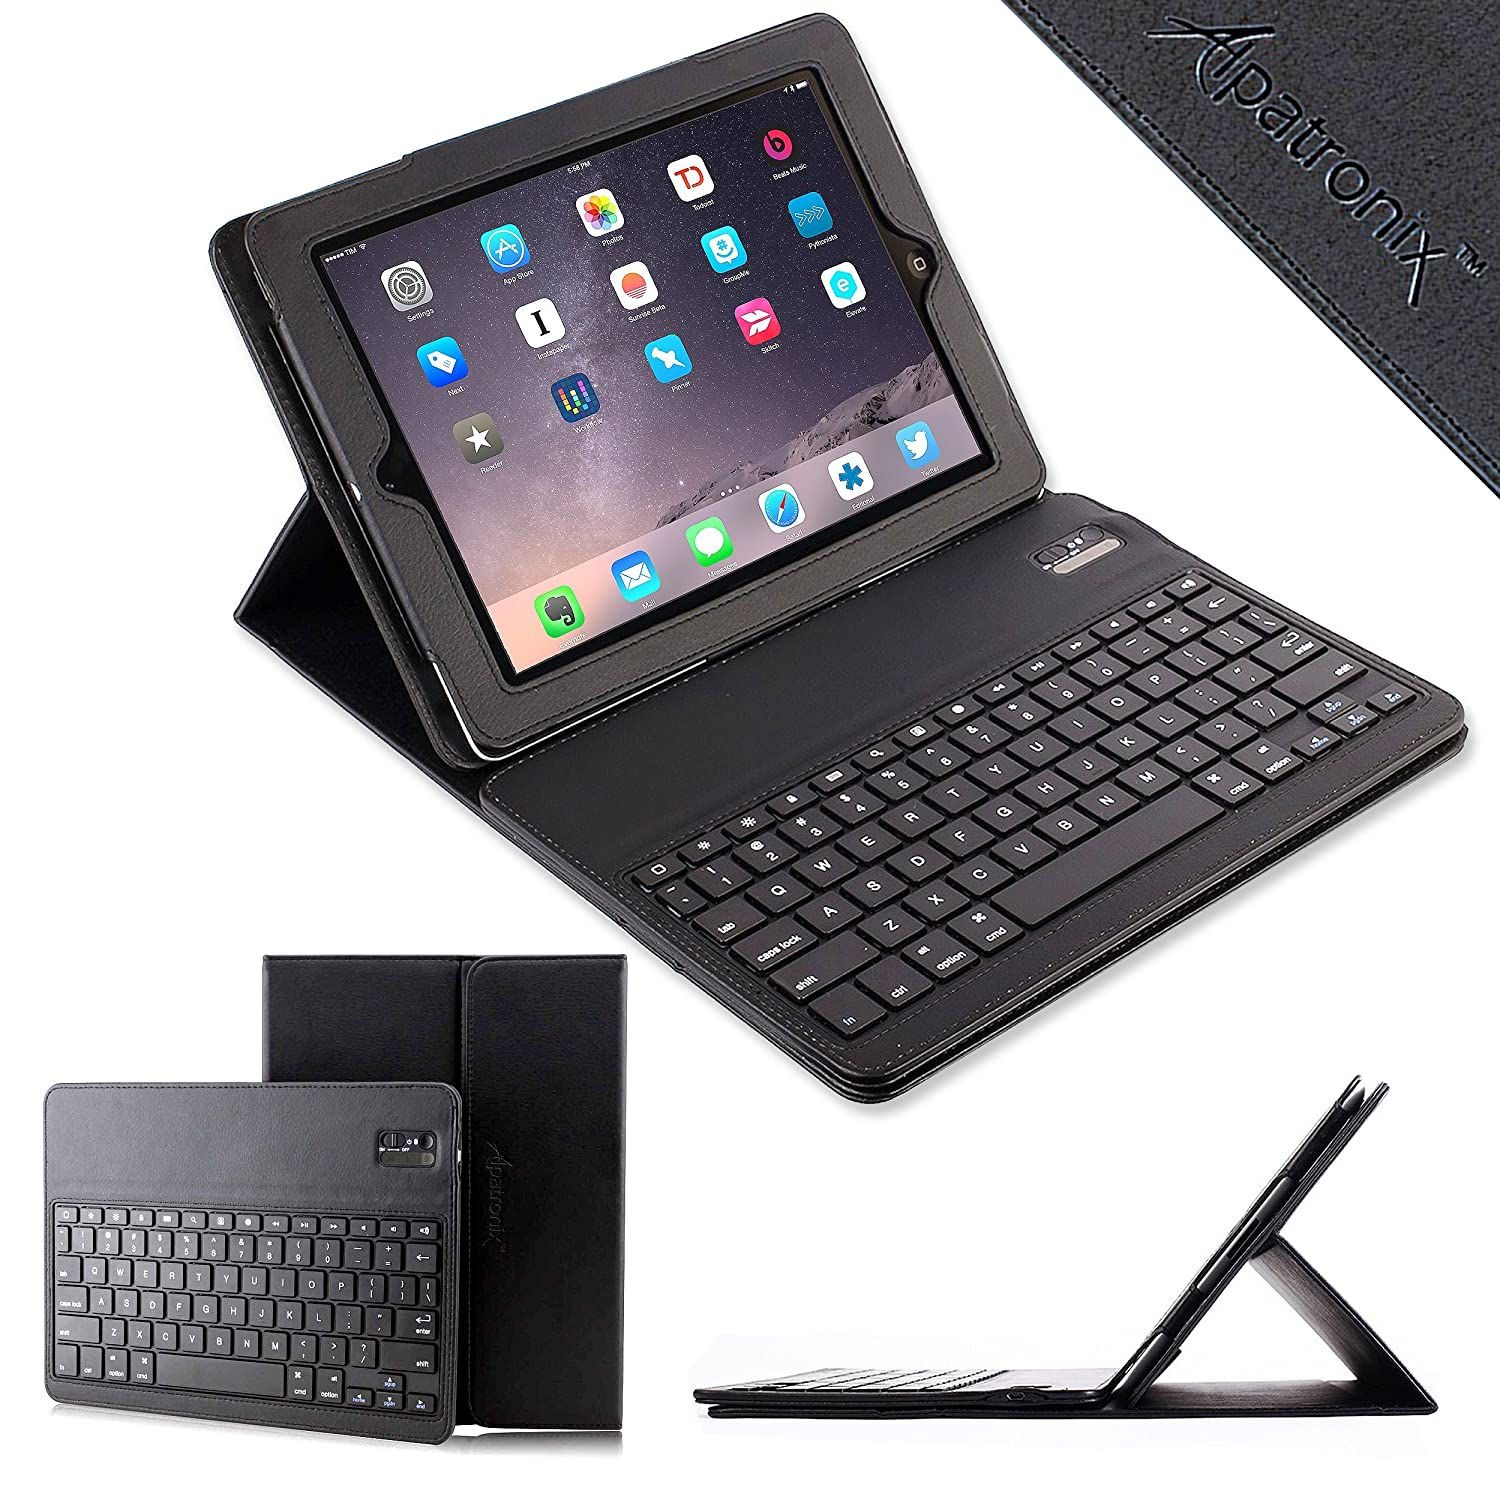 iPad Air & iPad Air 2 Keyboard Case - Alpatronix KX130 iPad Air Keyboard Case with Bluetooth Removable Folio Wireless ABS Keyboard, Detachable Vegan Leather Case  ..